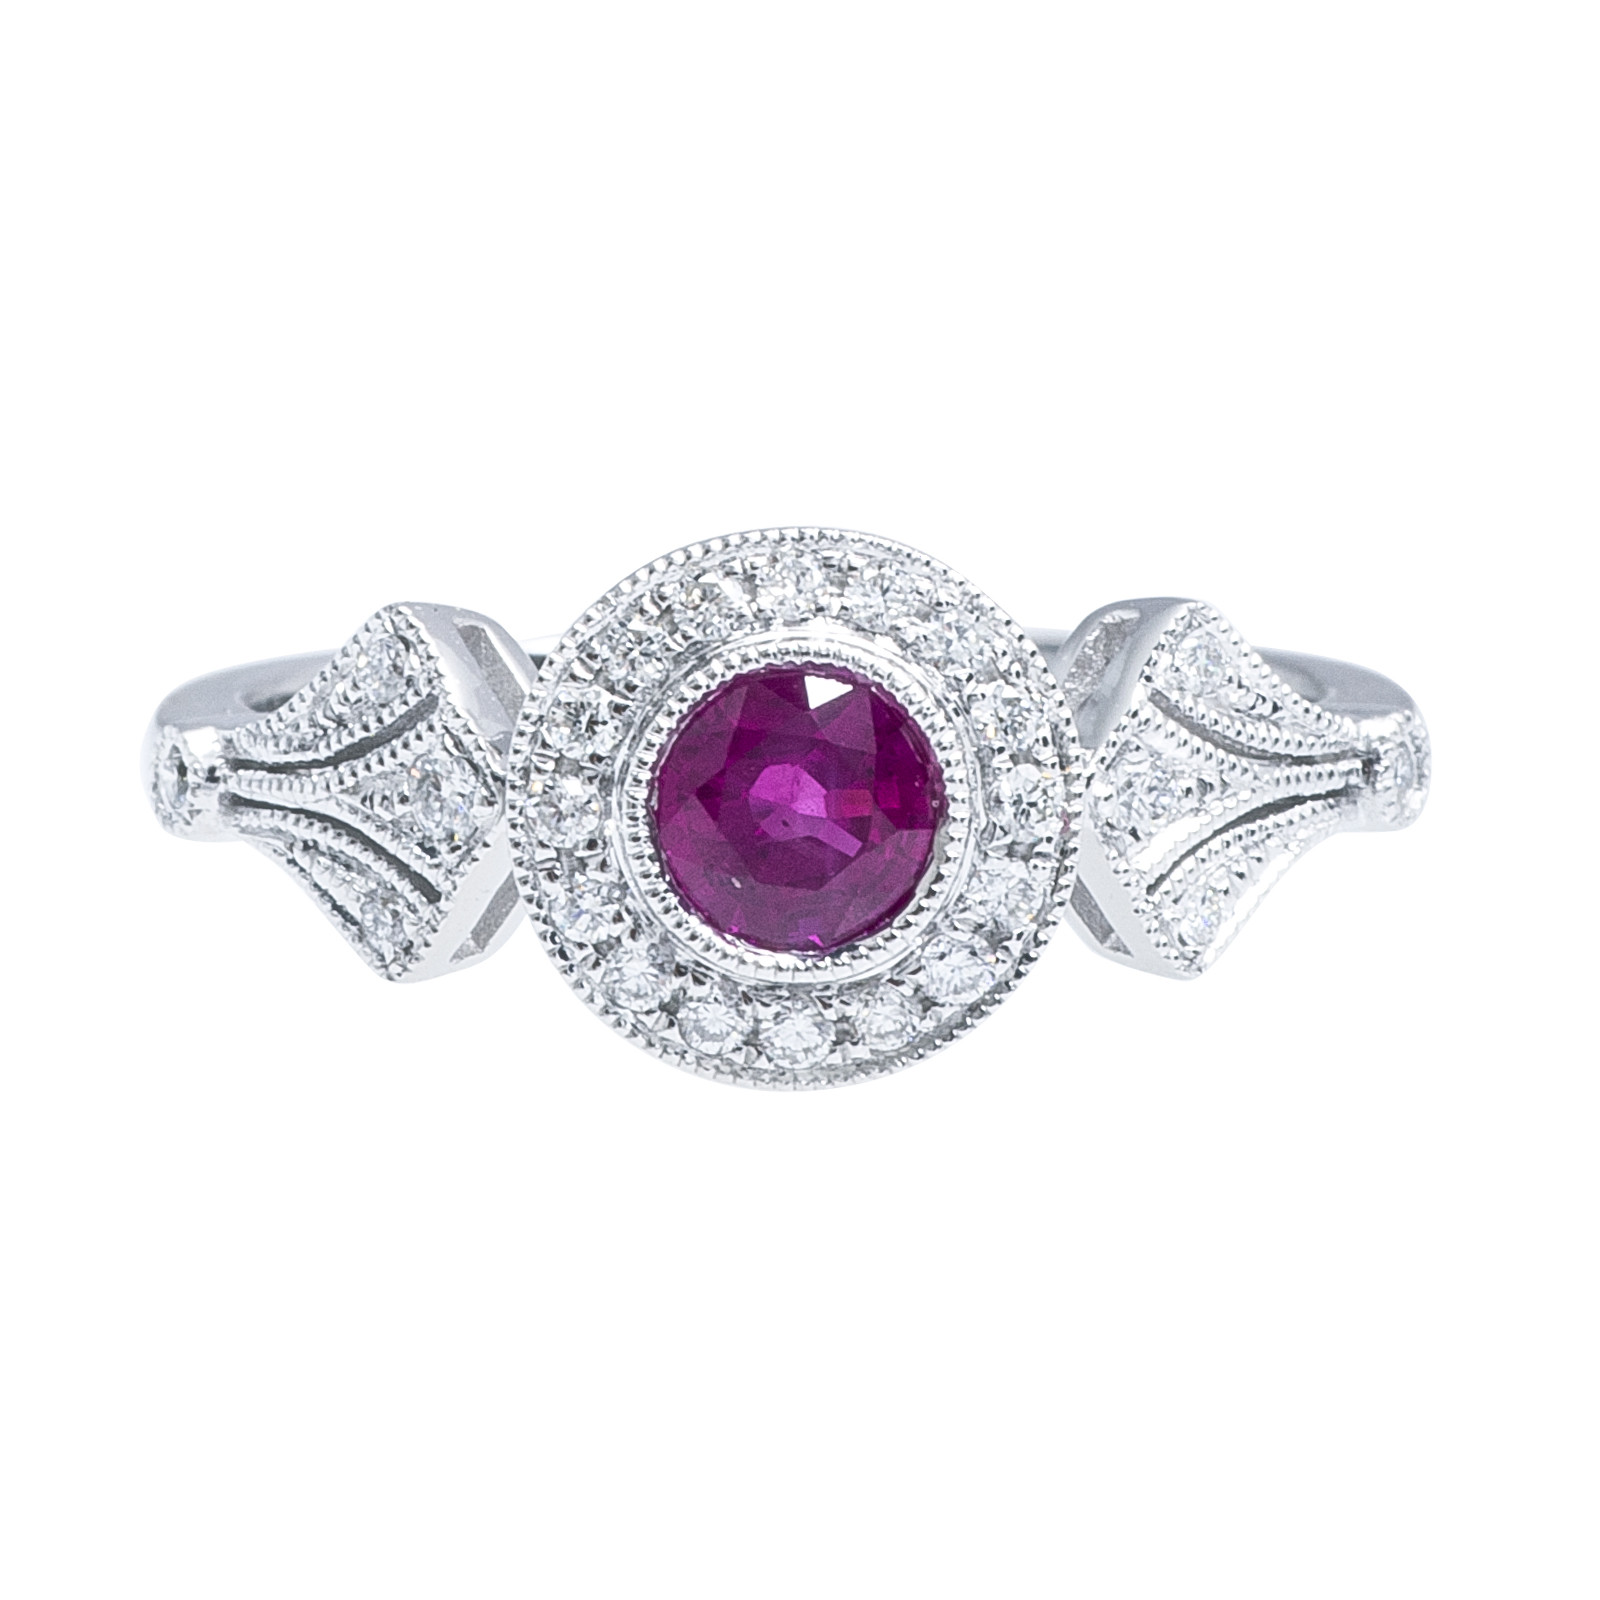 New Antique-Inspired 0.73 CTW Ruby & Diamond Ring